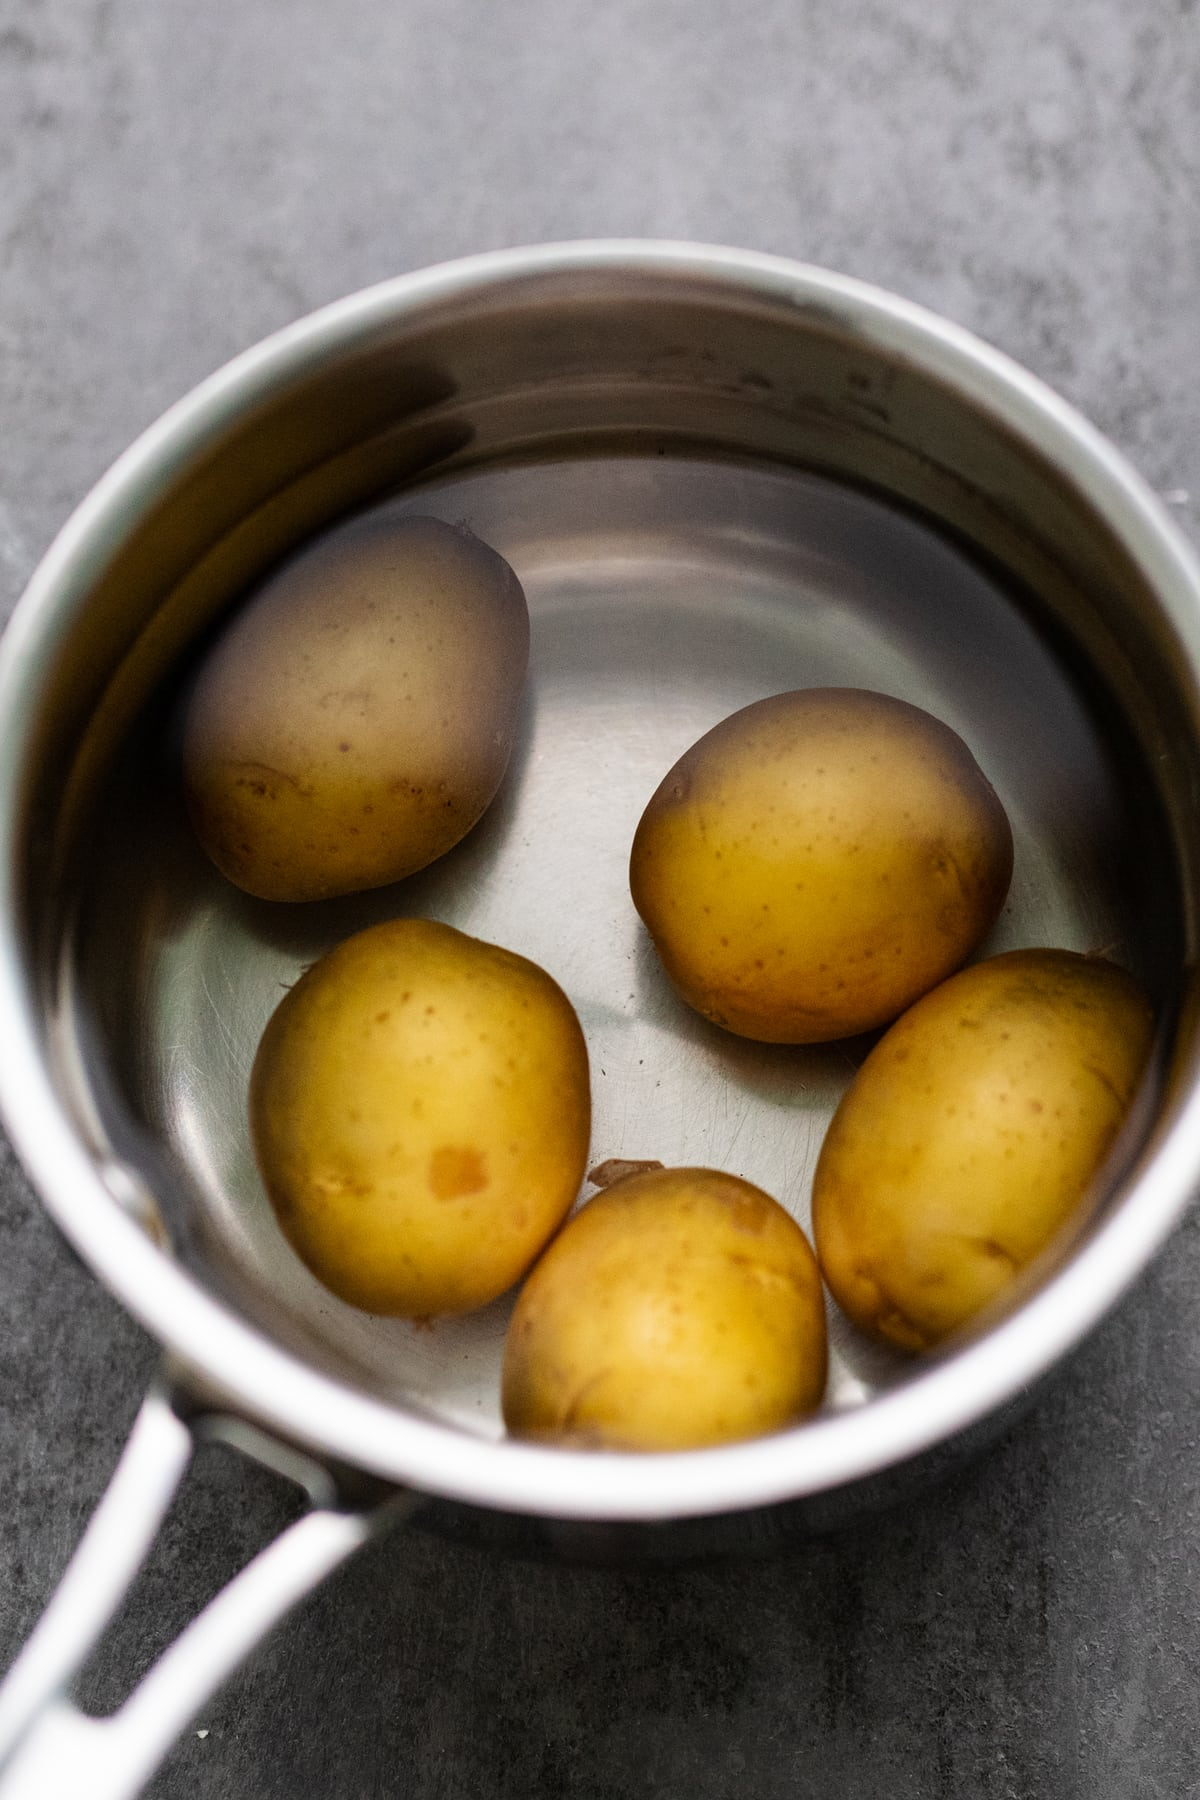 A stainless steel pot with yellow potatoes and water in it.